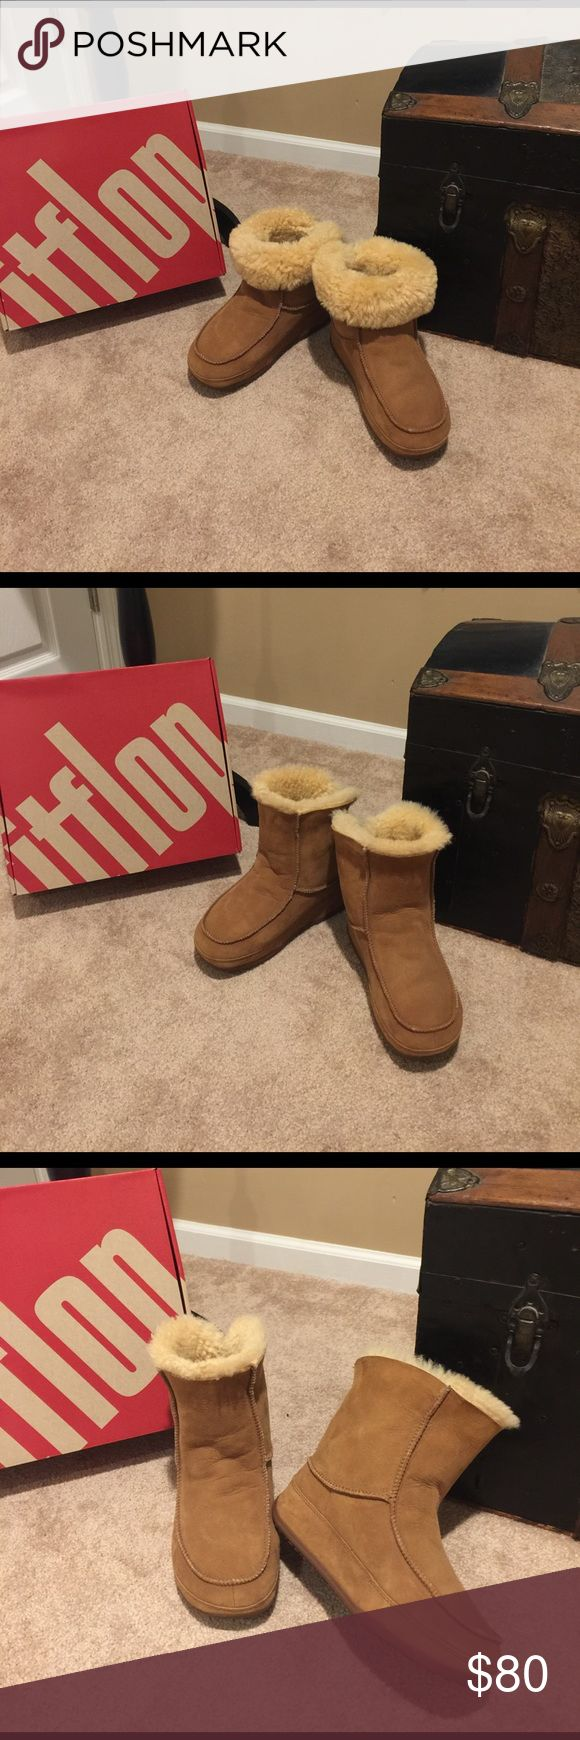 🌺🌼FIT FLOP🌼🌺 MUK LUK MOC 2 Chestnut boots SZ10 🌺🌼FIT FLOP🌼🌺 Preloved MUK LUK MOC 2 Chestnut boots SZ10 in excellent condition only worn two times there like brand new.  Have the original shoe it came in. Fit Flop Shoes Ankle Boots & Booties